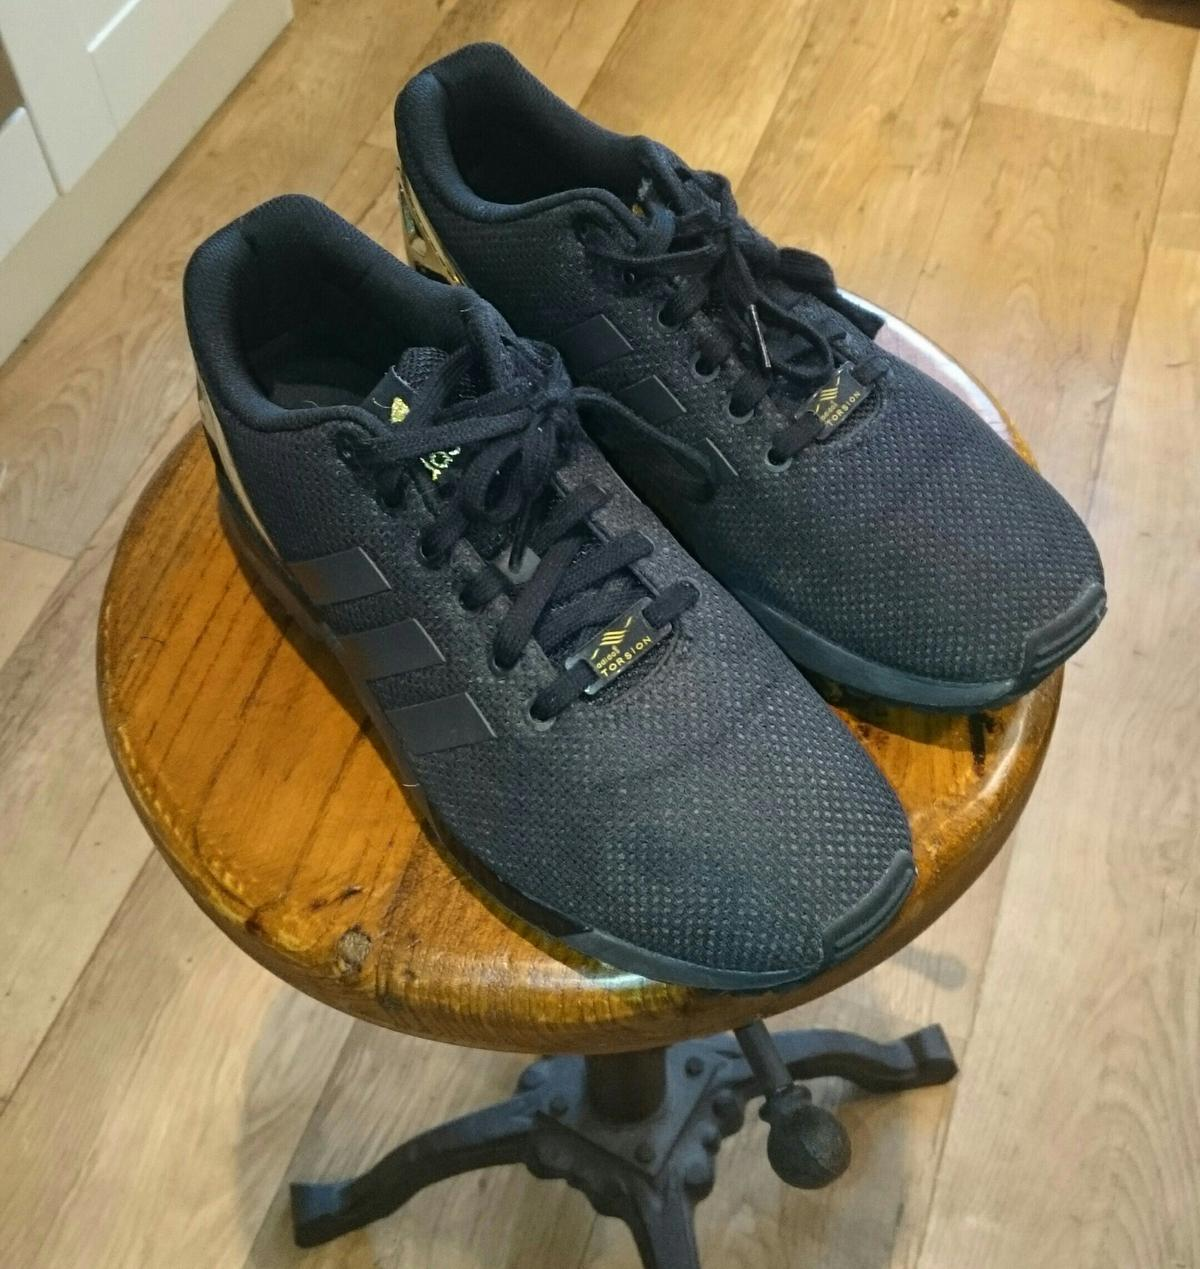 uk availability cfbe1 751c9 Uk8 Adidas ZX Flux JD exclusive in HD6 Brighouse for £25.00 ...